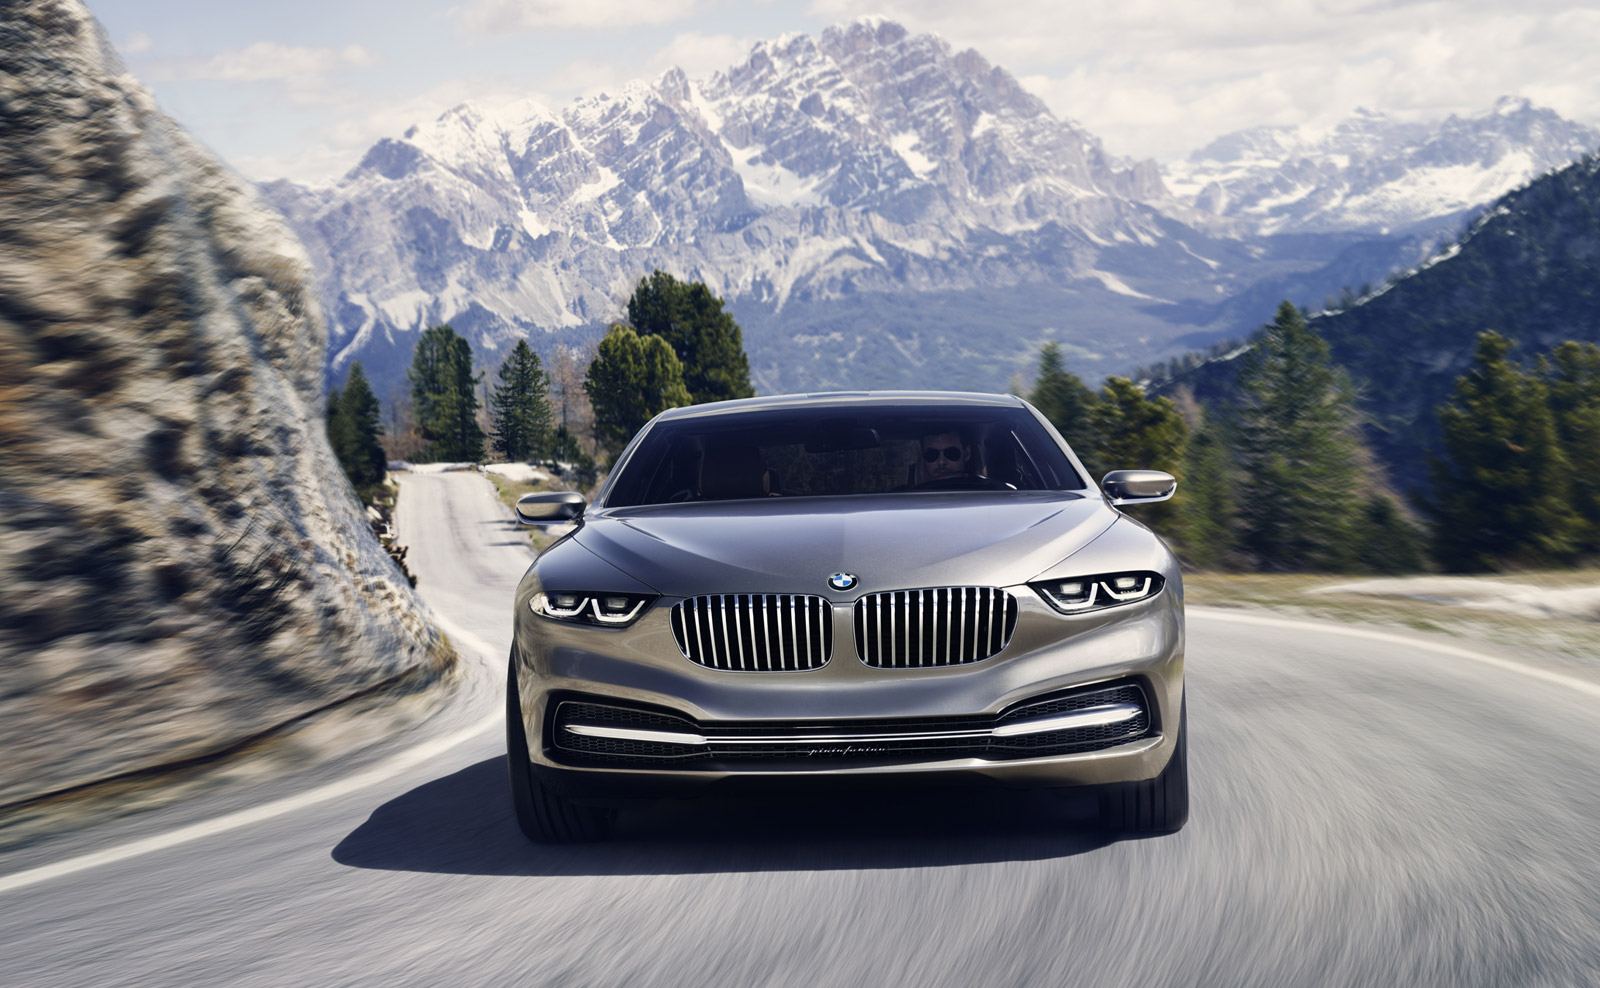 Bmw To Present 9 Series Concept At Beijing Auto Show Report